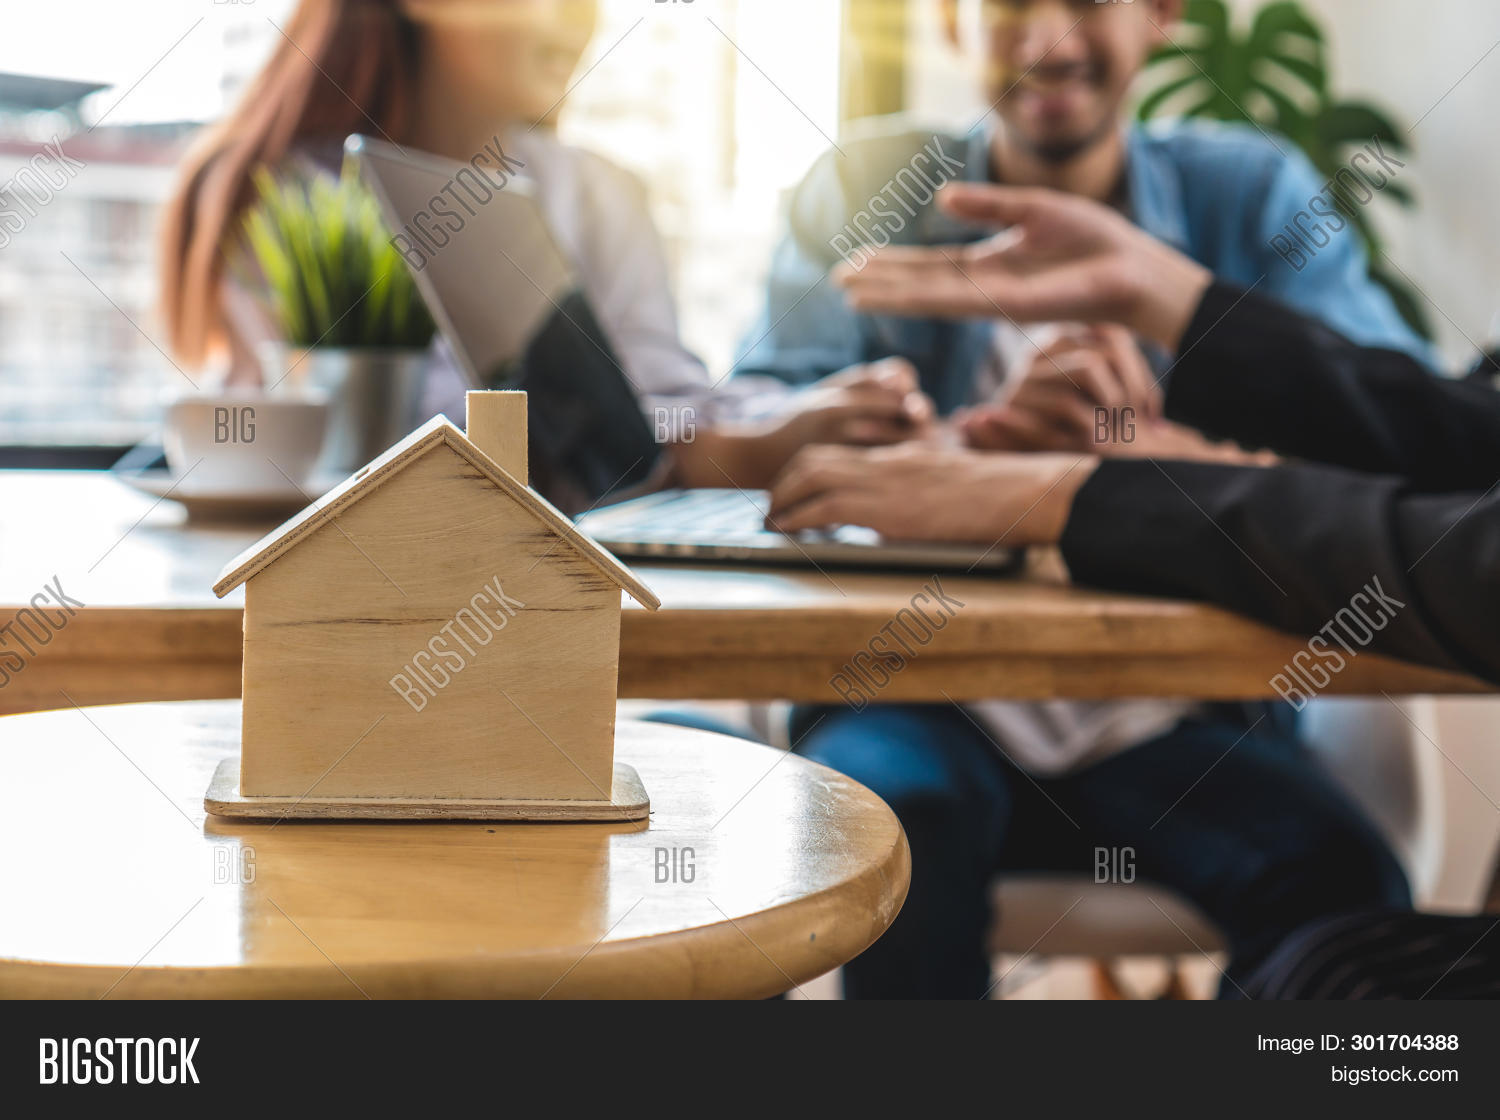 agreement,asia,asian,business,businessman,casual,caucasian,chain,cheerful,computer,concept,congratulation,contract,couple,discussion,document,engagement,estate,family,friends,gesturing,glad,hand,handshake,happiness,happy,home,homeowner,house,investor,key,lifestyle,love,lover,male,meeting,moving,negotiation,occupation,owner,partnership,people,professional,relocate,relocation,rent,shaking,sign,successful